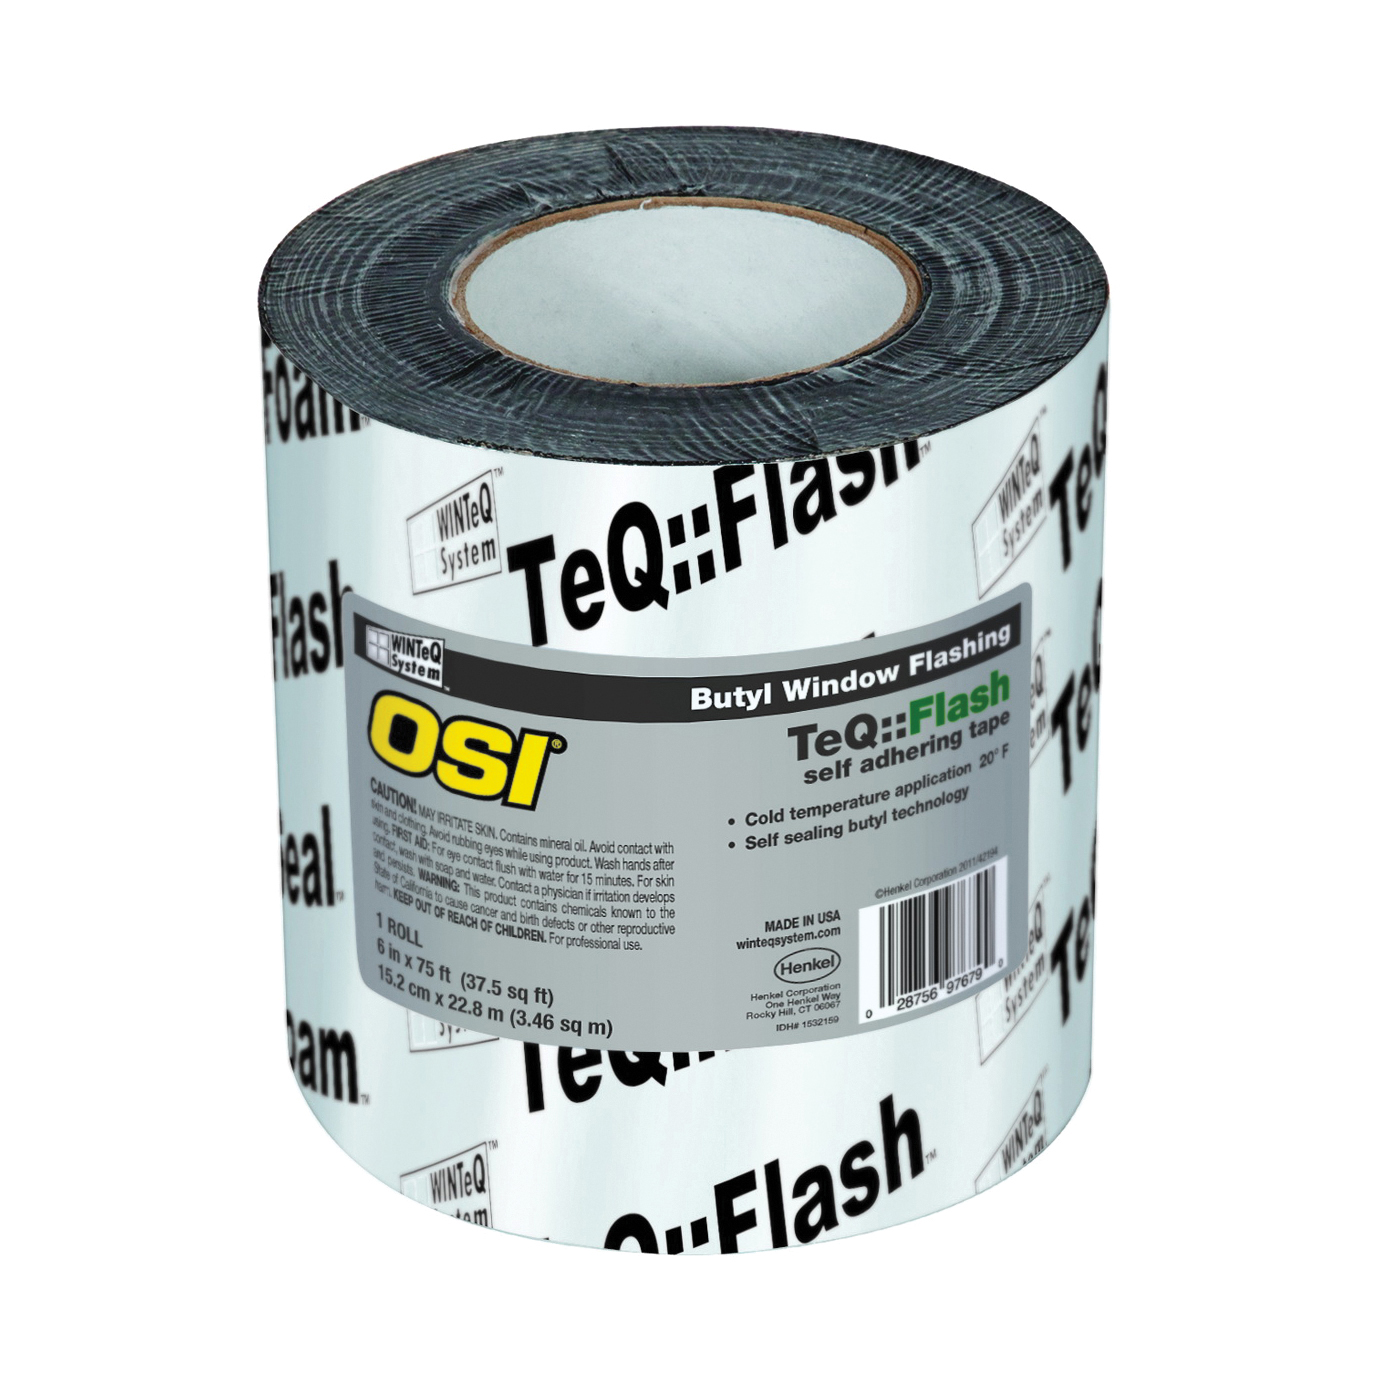 Picture of OSI Butyl Flash 1532159 Window Flashing Tape, 75 ft L, 6 in W, Black, Self Adhesive